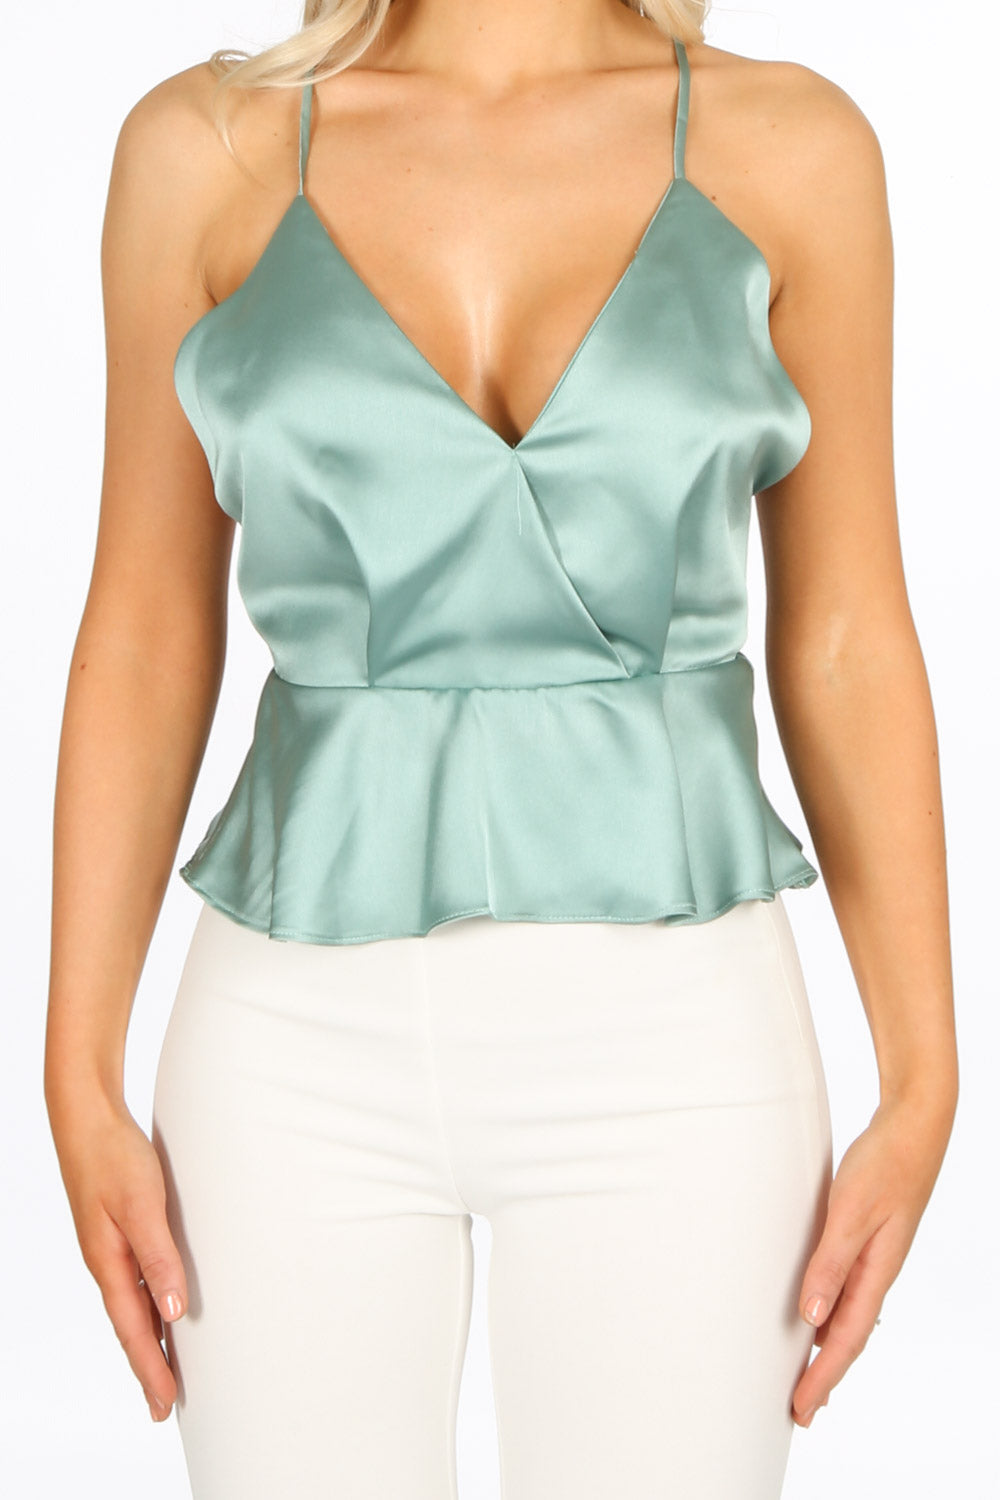 Strappy Satin Peplum Cami Top In Mint Green